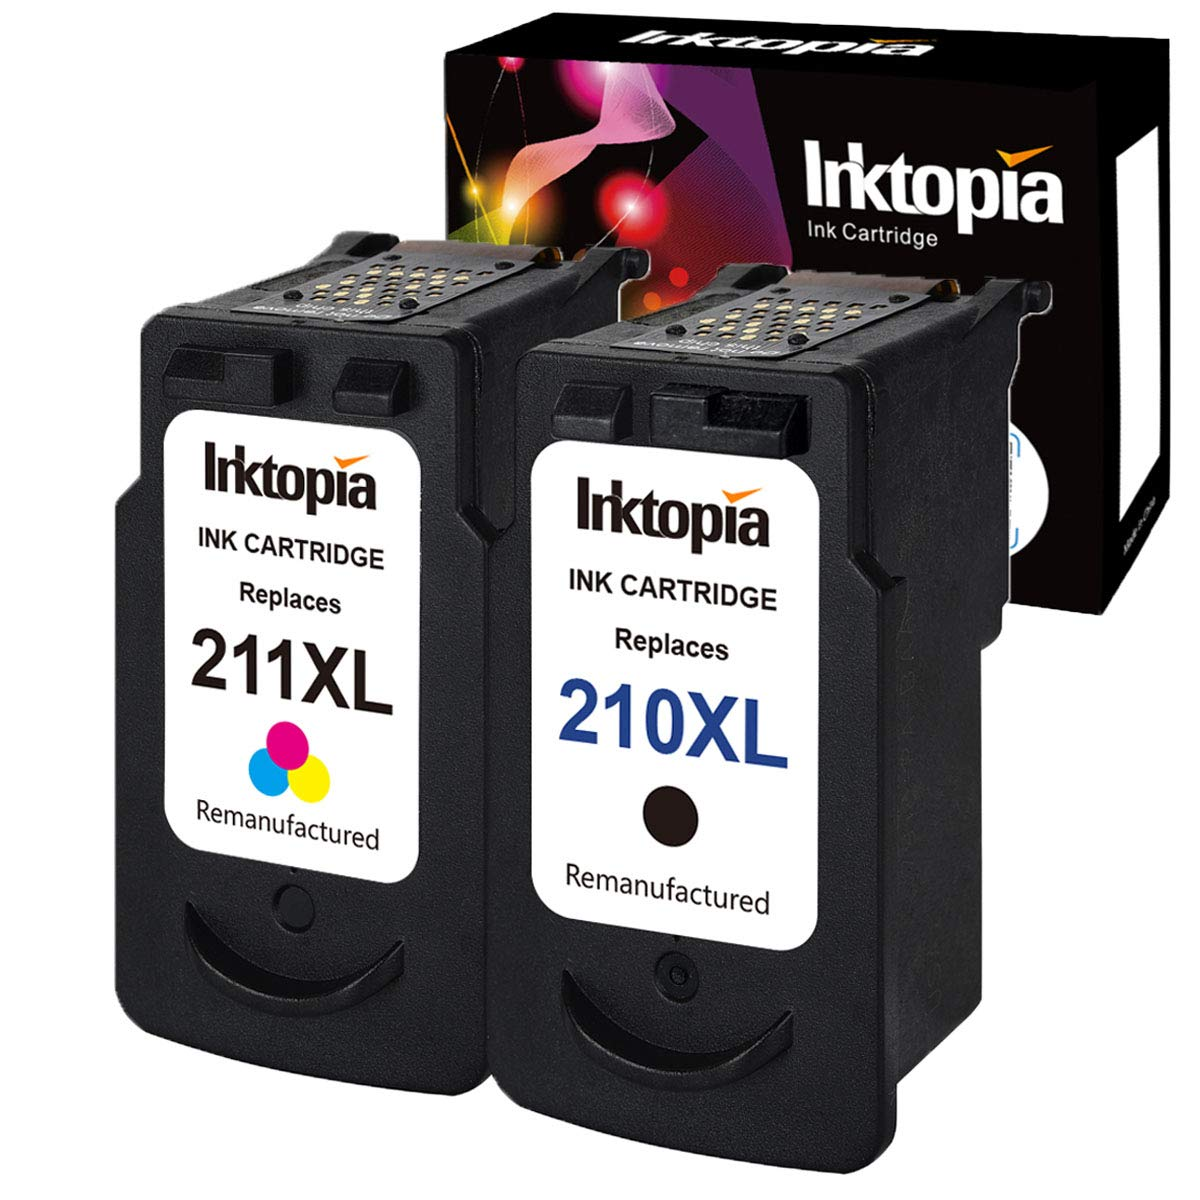 CANON IP2700 INK WINDOWS 8 DRIVERS DOWNLOAD (2019)